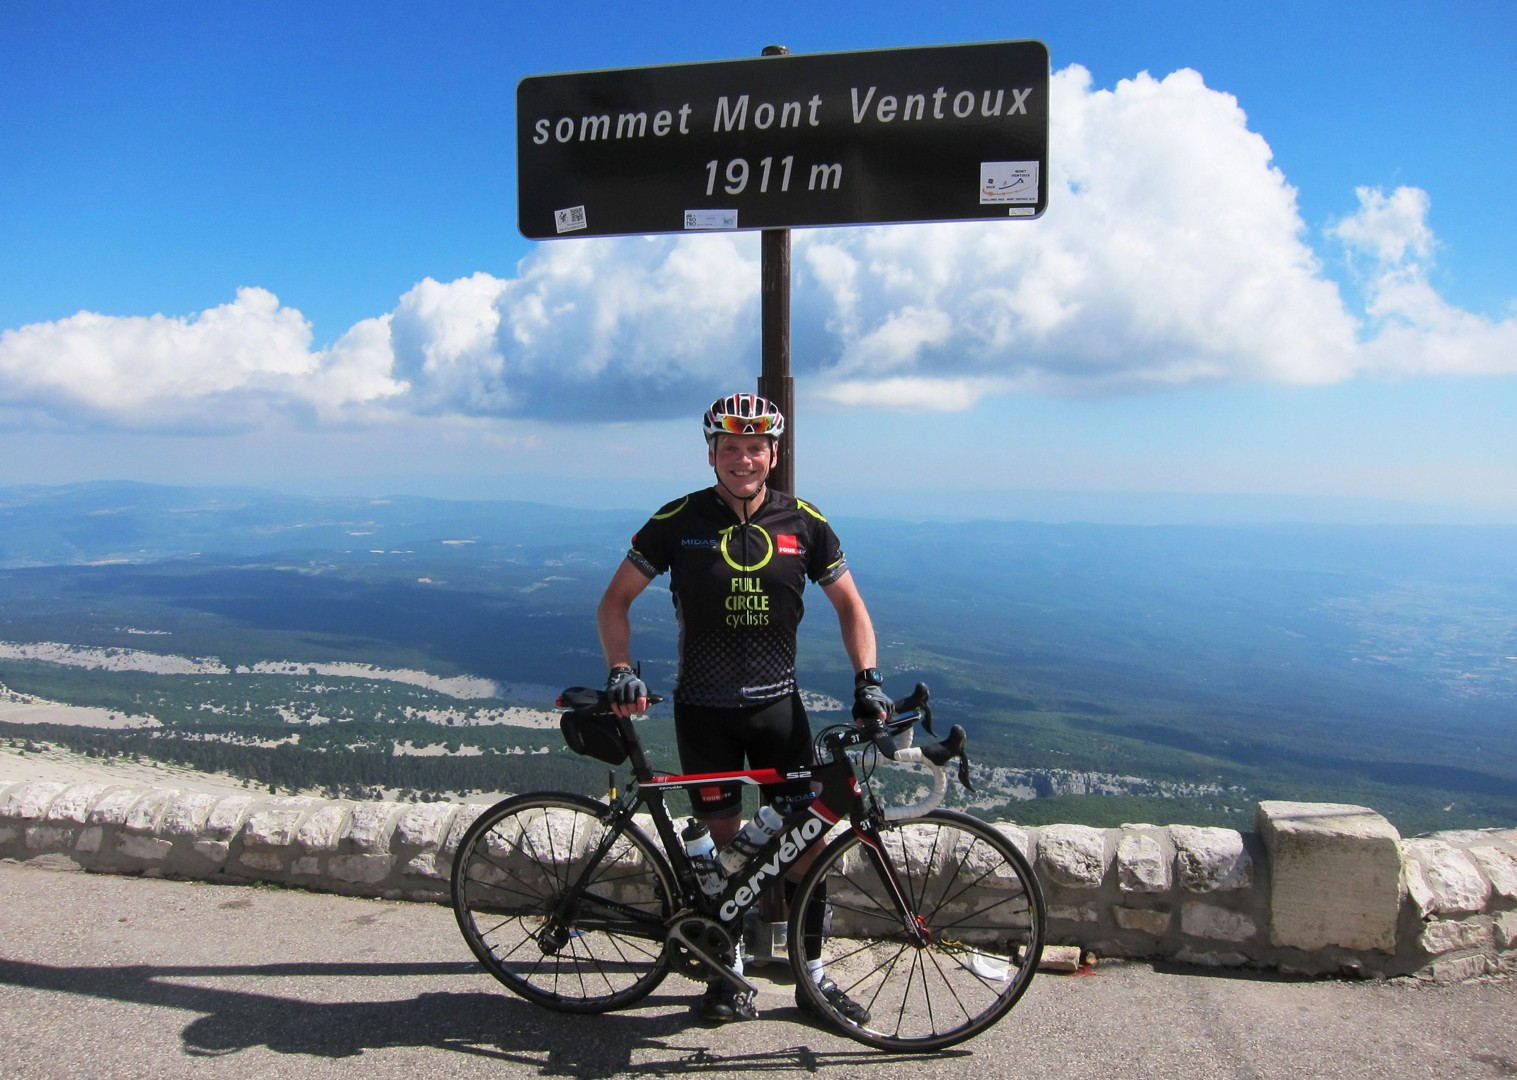 mount-ventoux-classic-road-cycling.jpg - France - St Malo to Nice Classic (15 days) - Guided Road Cycling Holiday - Road Cycling